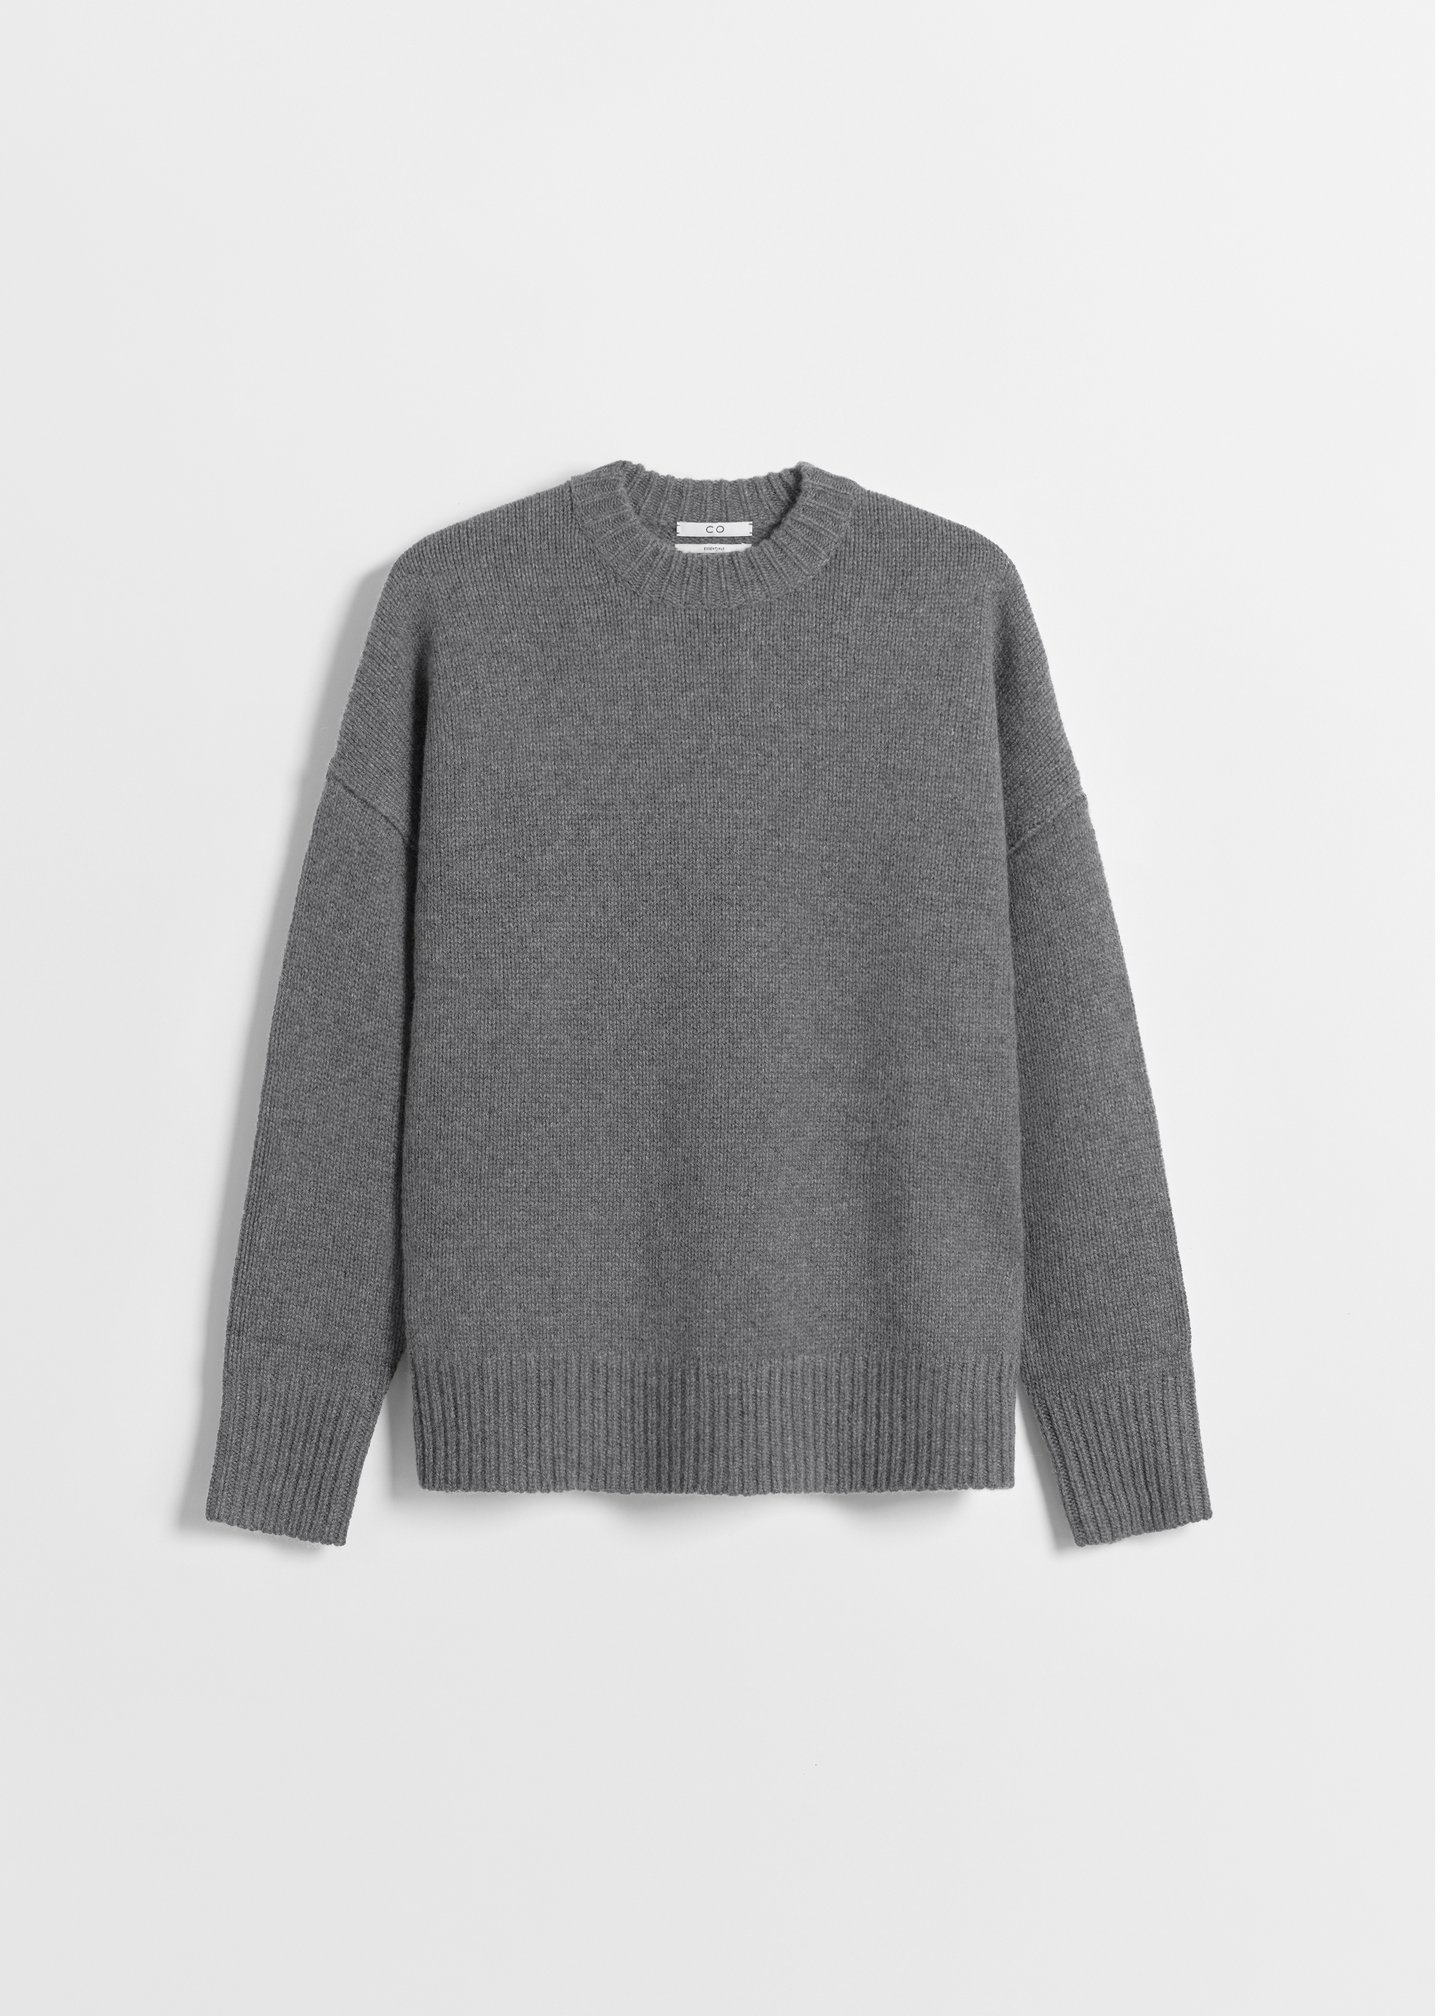 CO - Boyfriend Crew Neck in Wool Cashmere - Grey